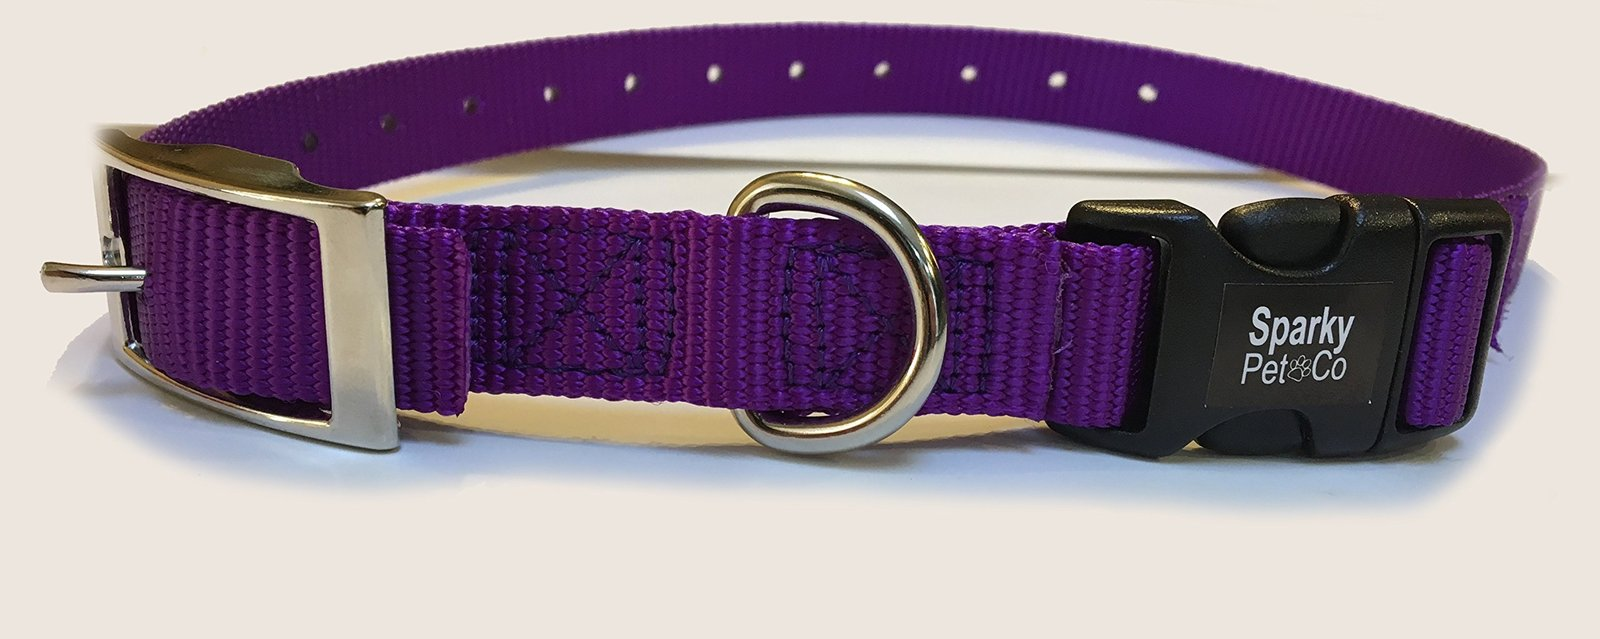 "Sparky PetCo E Collar Compatible 3/4"" Nylon Double Buckle Quick Snap Replacem..."